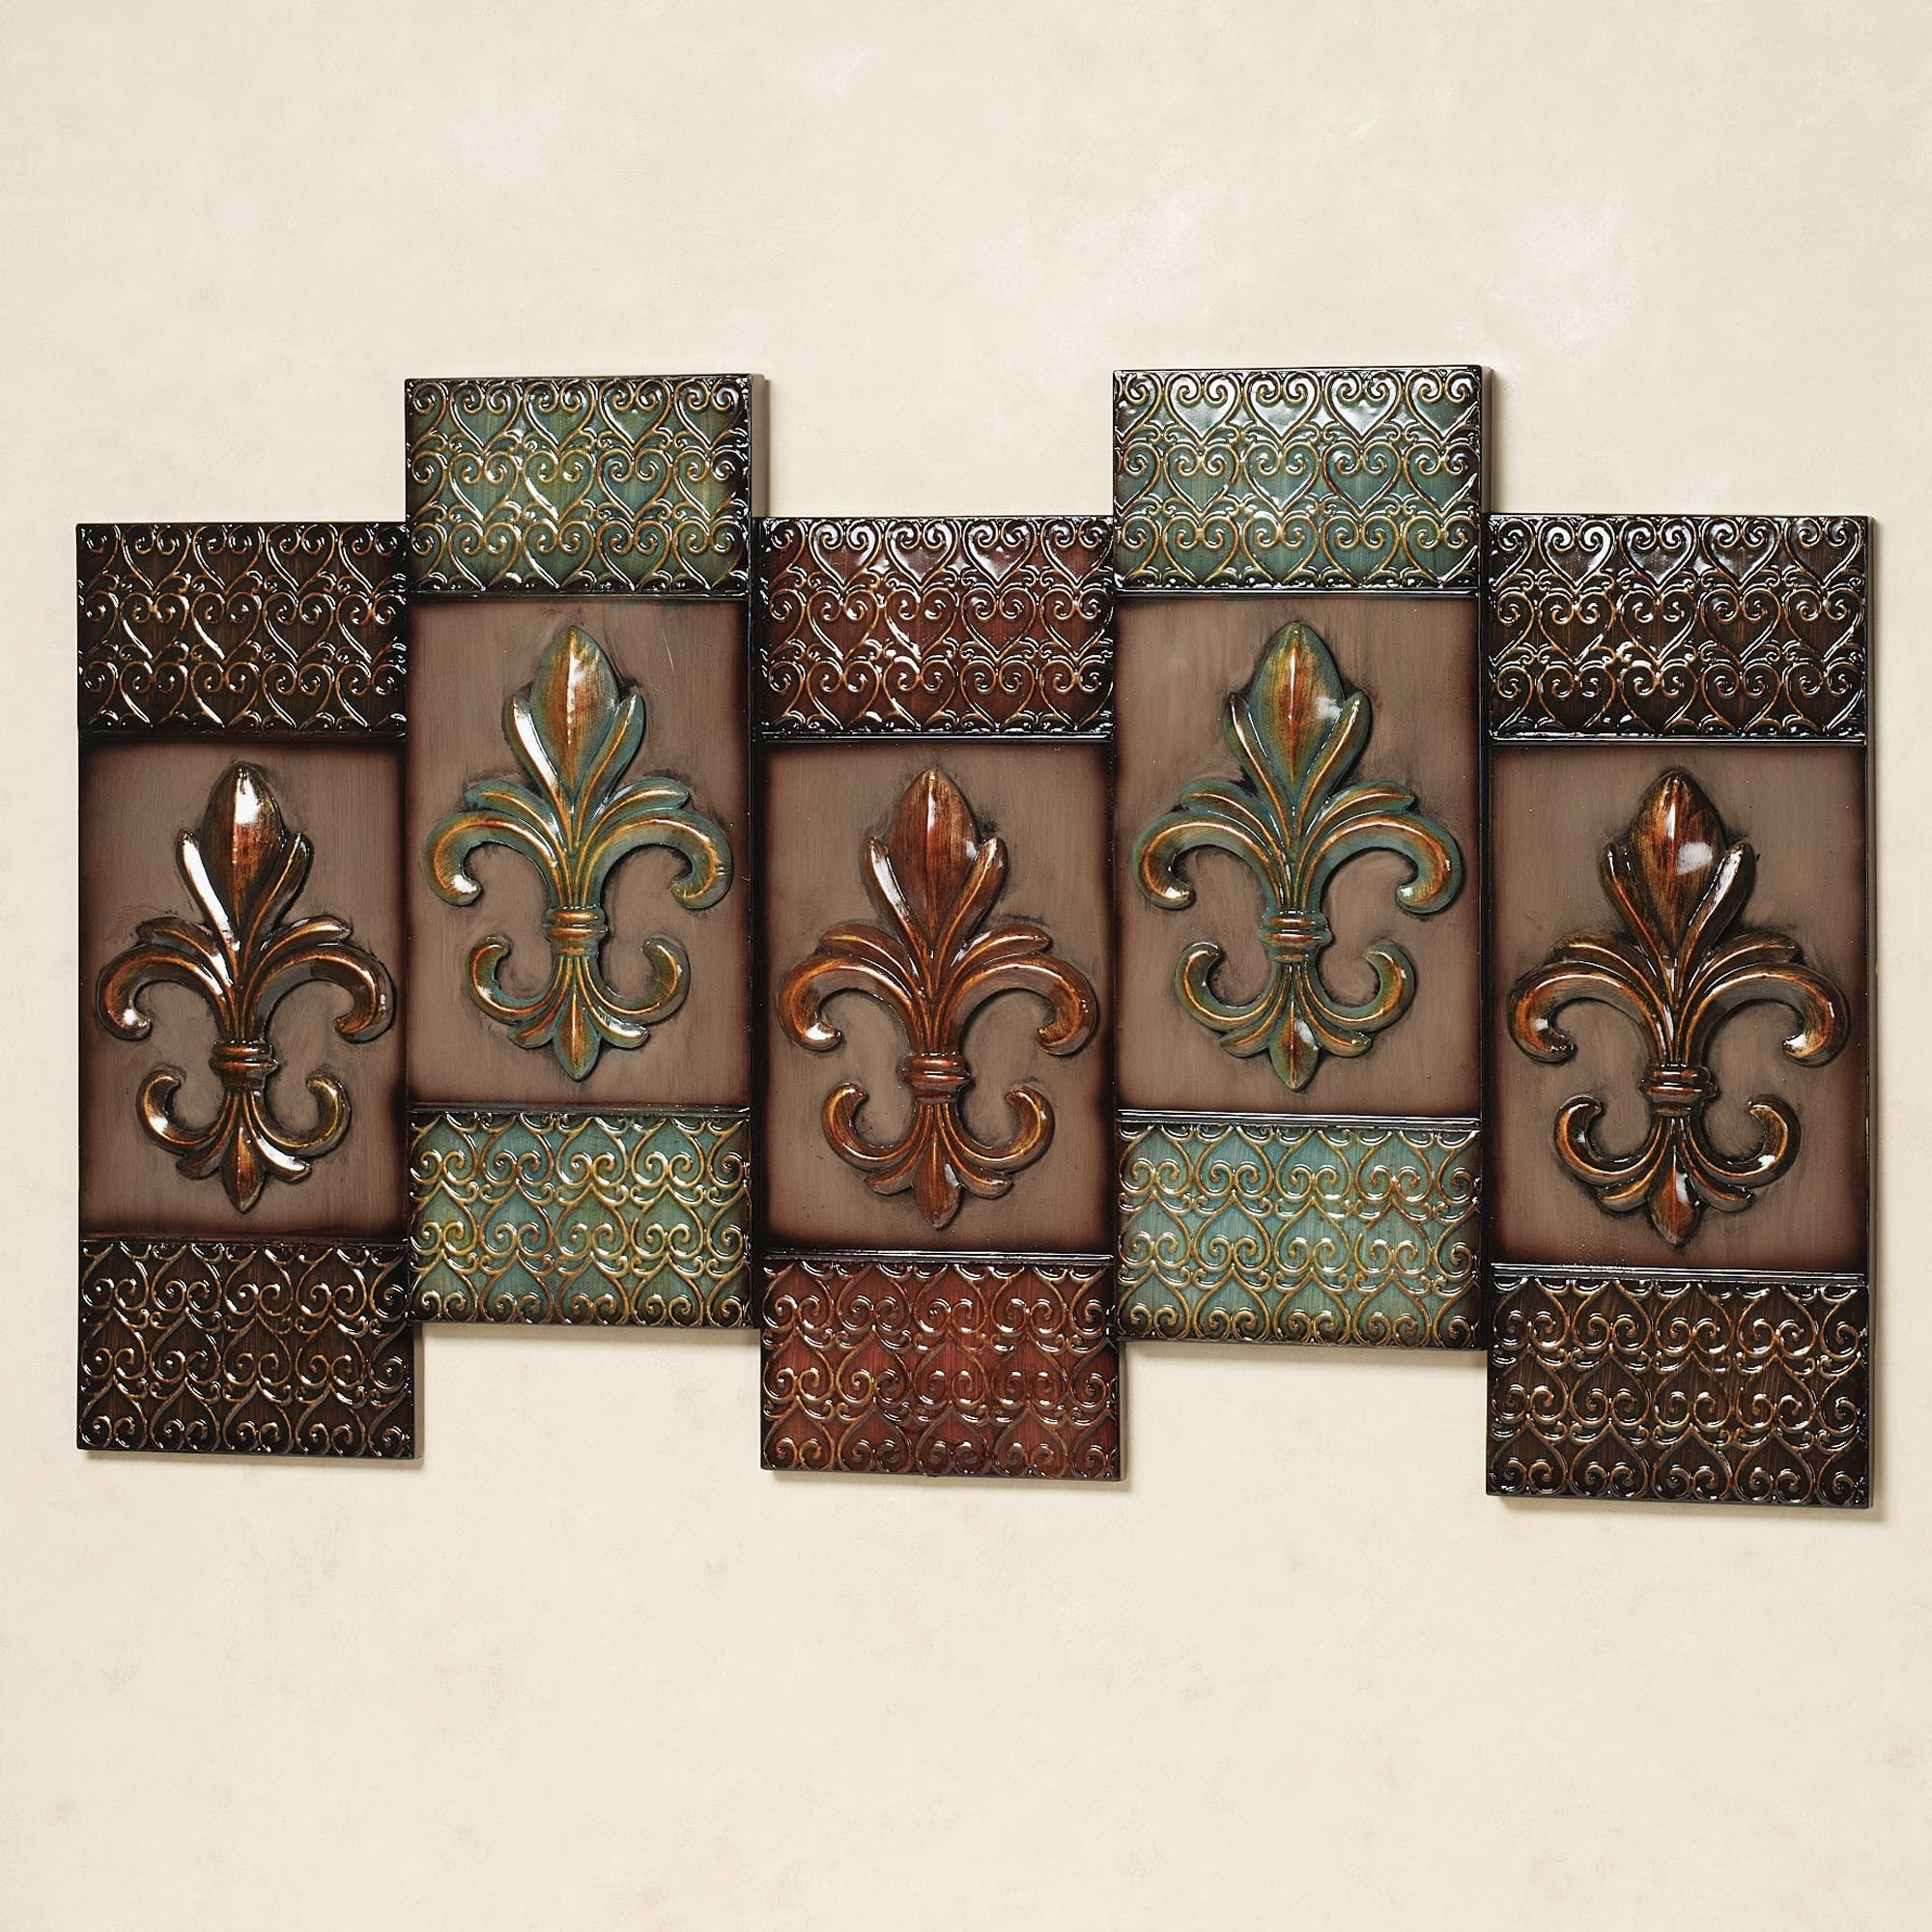 Fleur De Lis Wall Decor # Fleur De Lis Outdoor Wall Decor - Youtube inside Fleur De Lis Wall Art (Image 7 of 20)